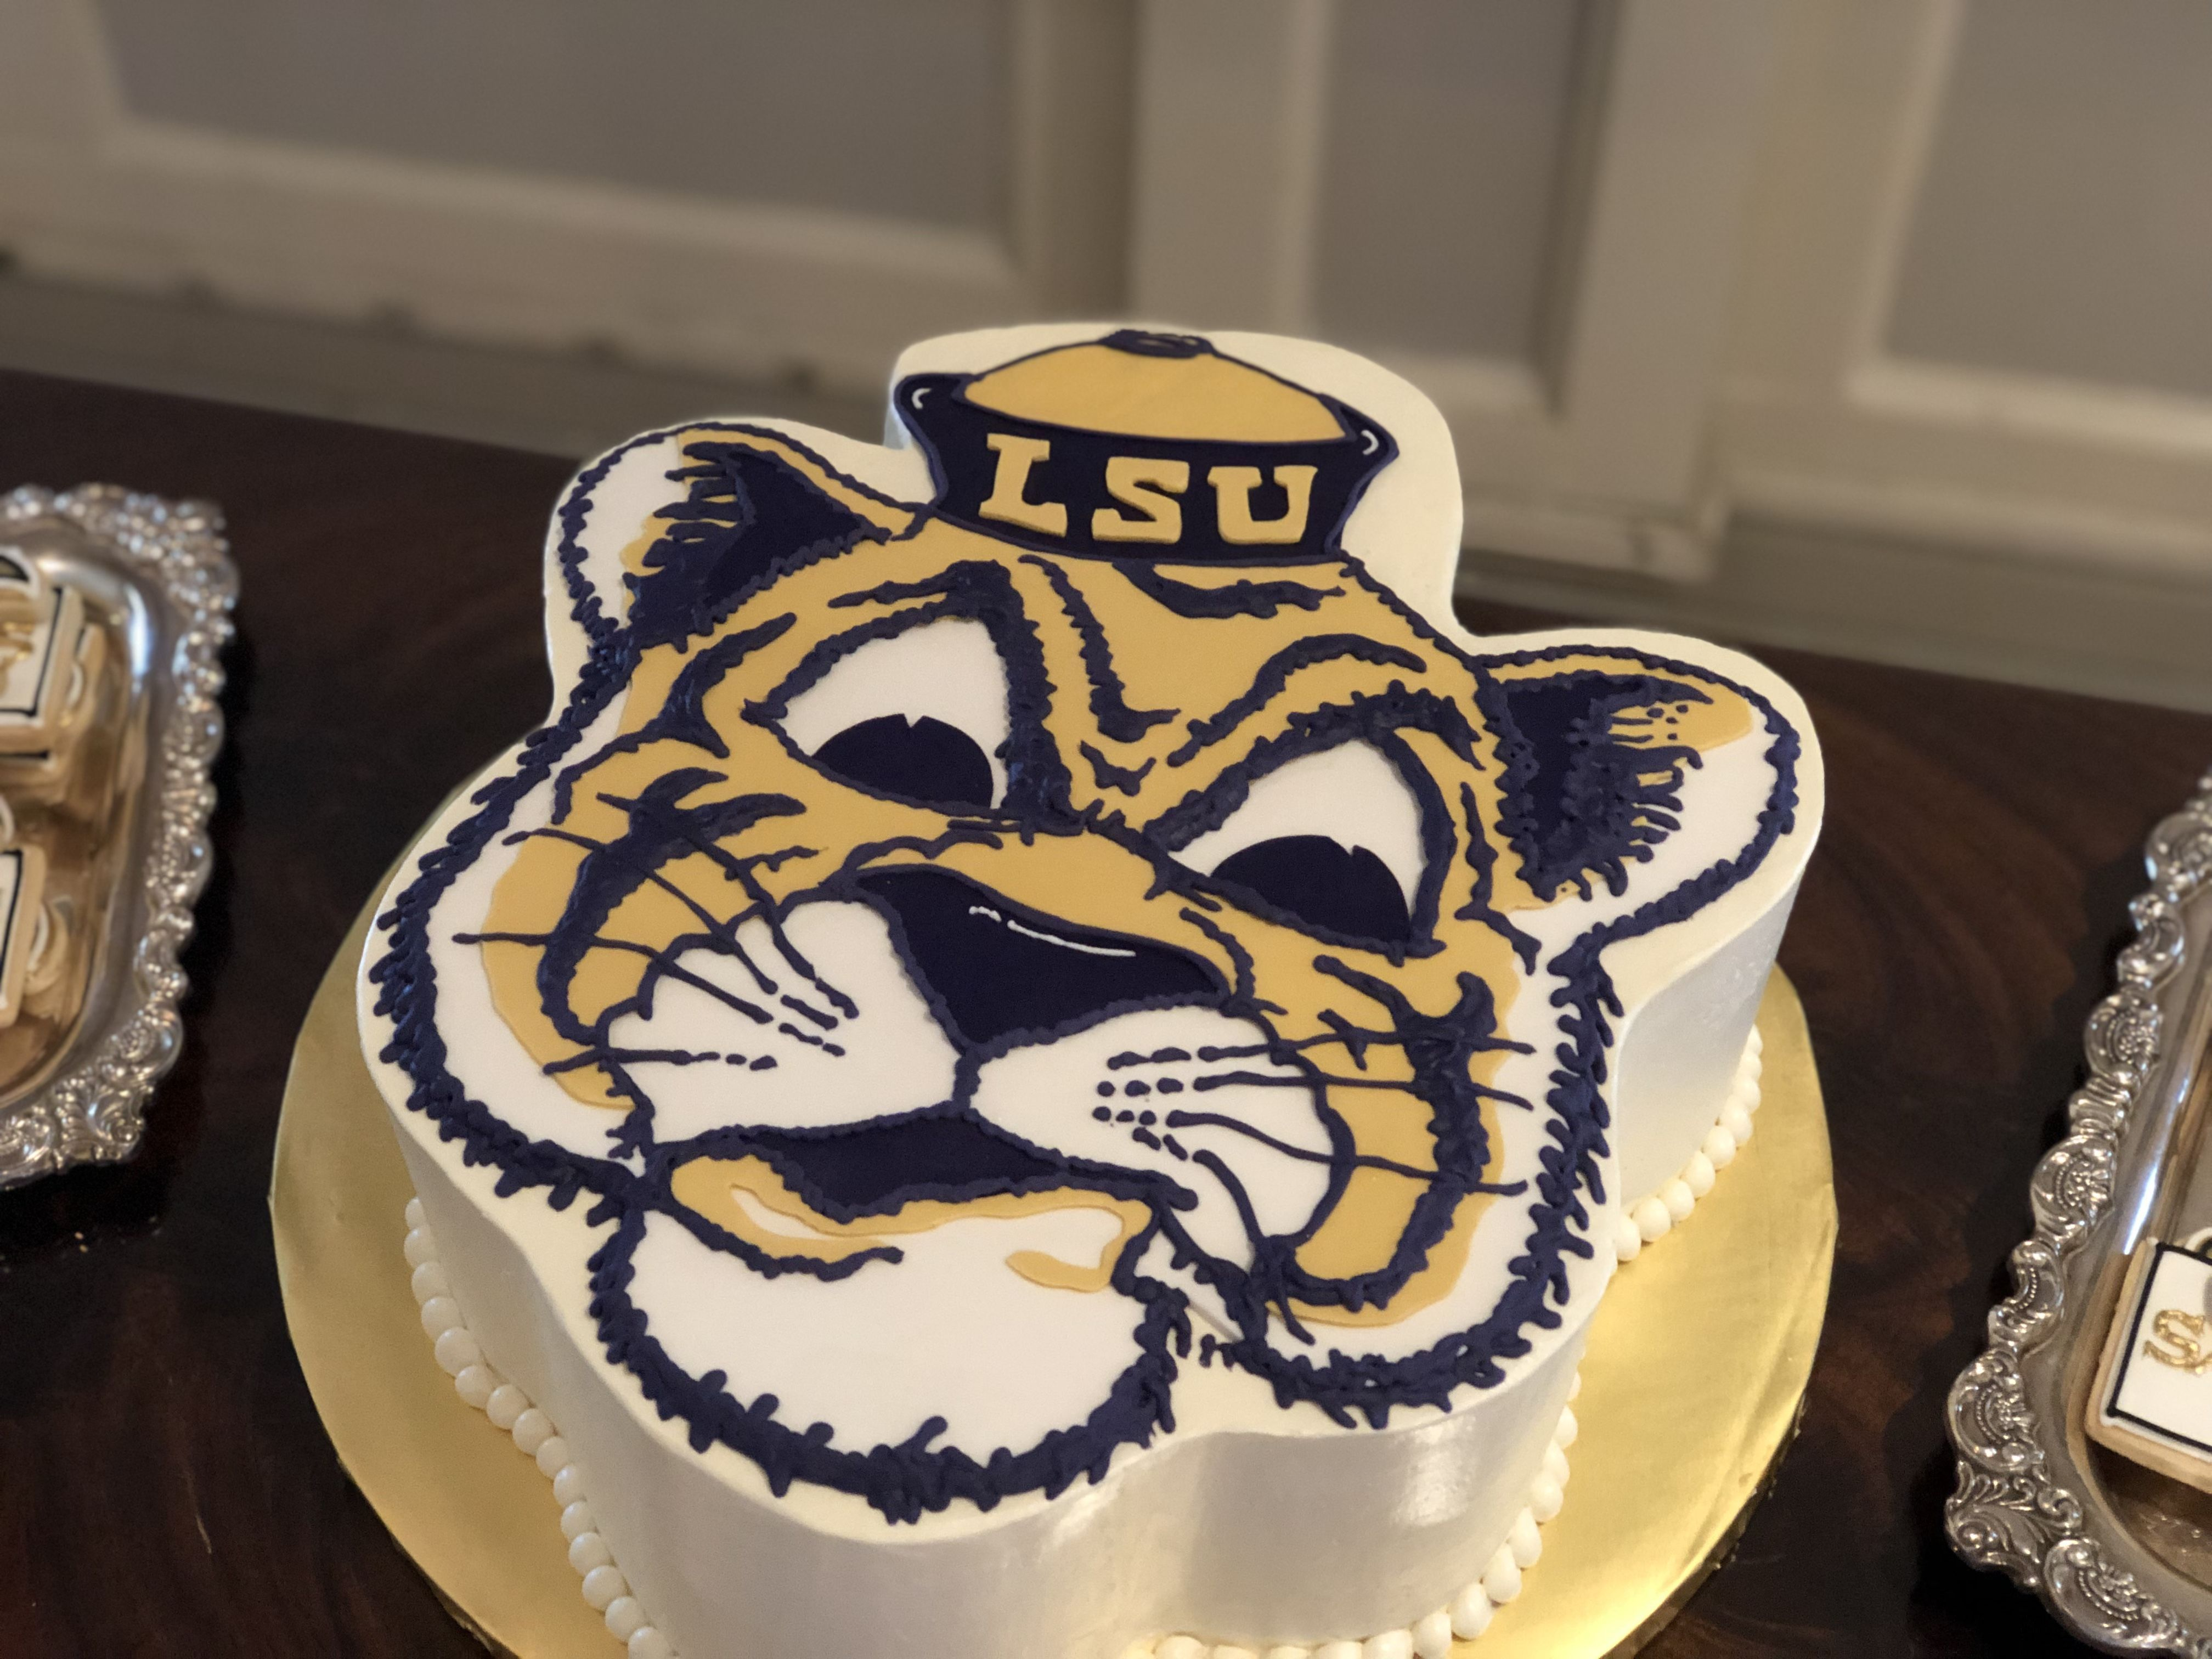 Lsu Tiger Cake Vintage Mike The Tiger Buttercream Cake Lsu Groom S Cake At Boudreaux S In Baton Rouge Cake Tiger Cake Custom Cakes